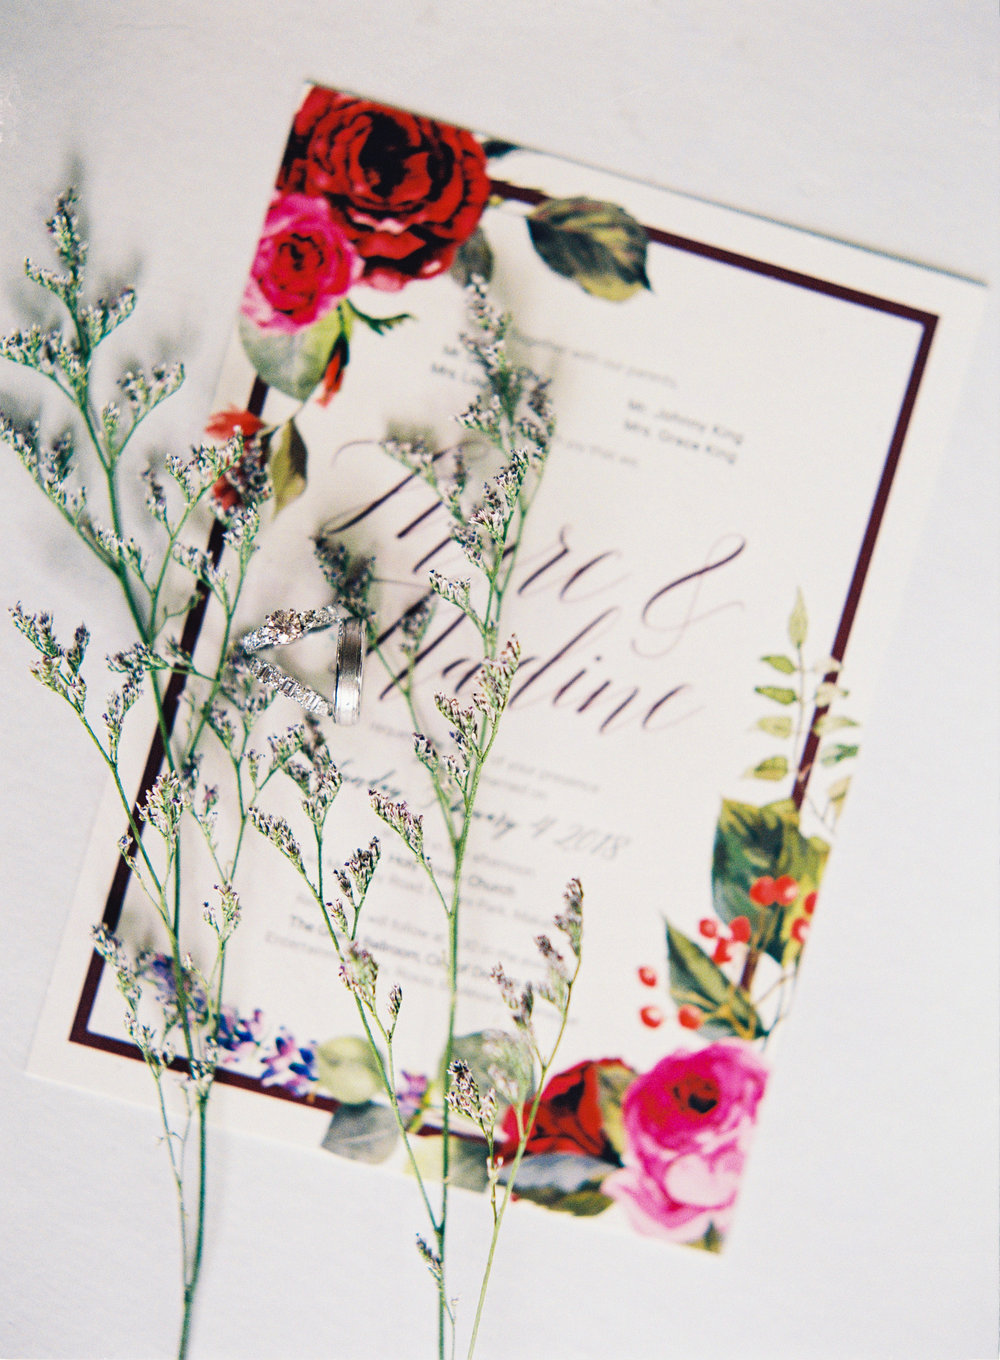 stationary detail film photography Daniel Moroni destination wedding photographer Italy